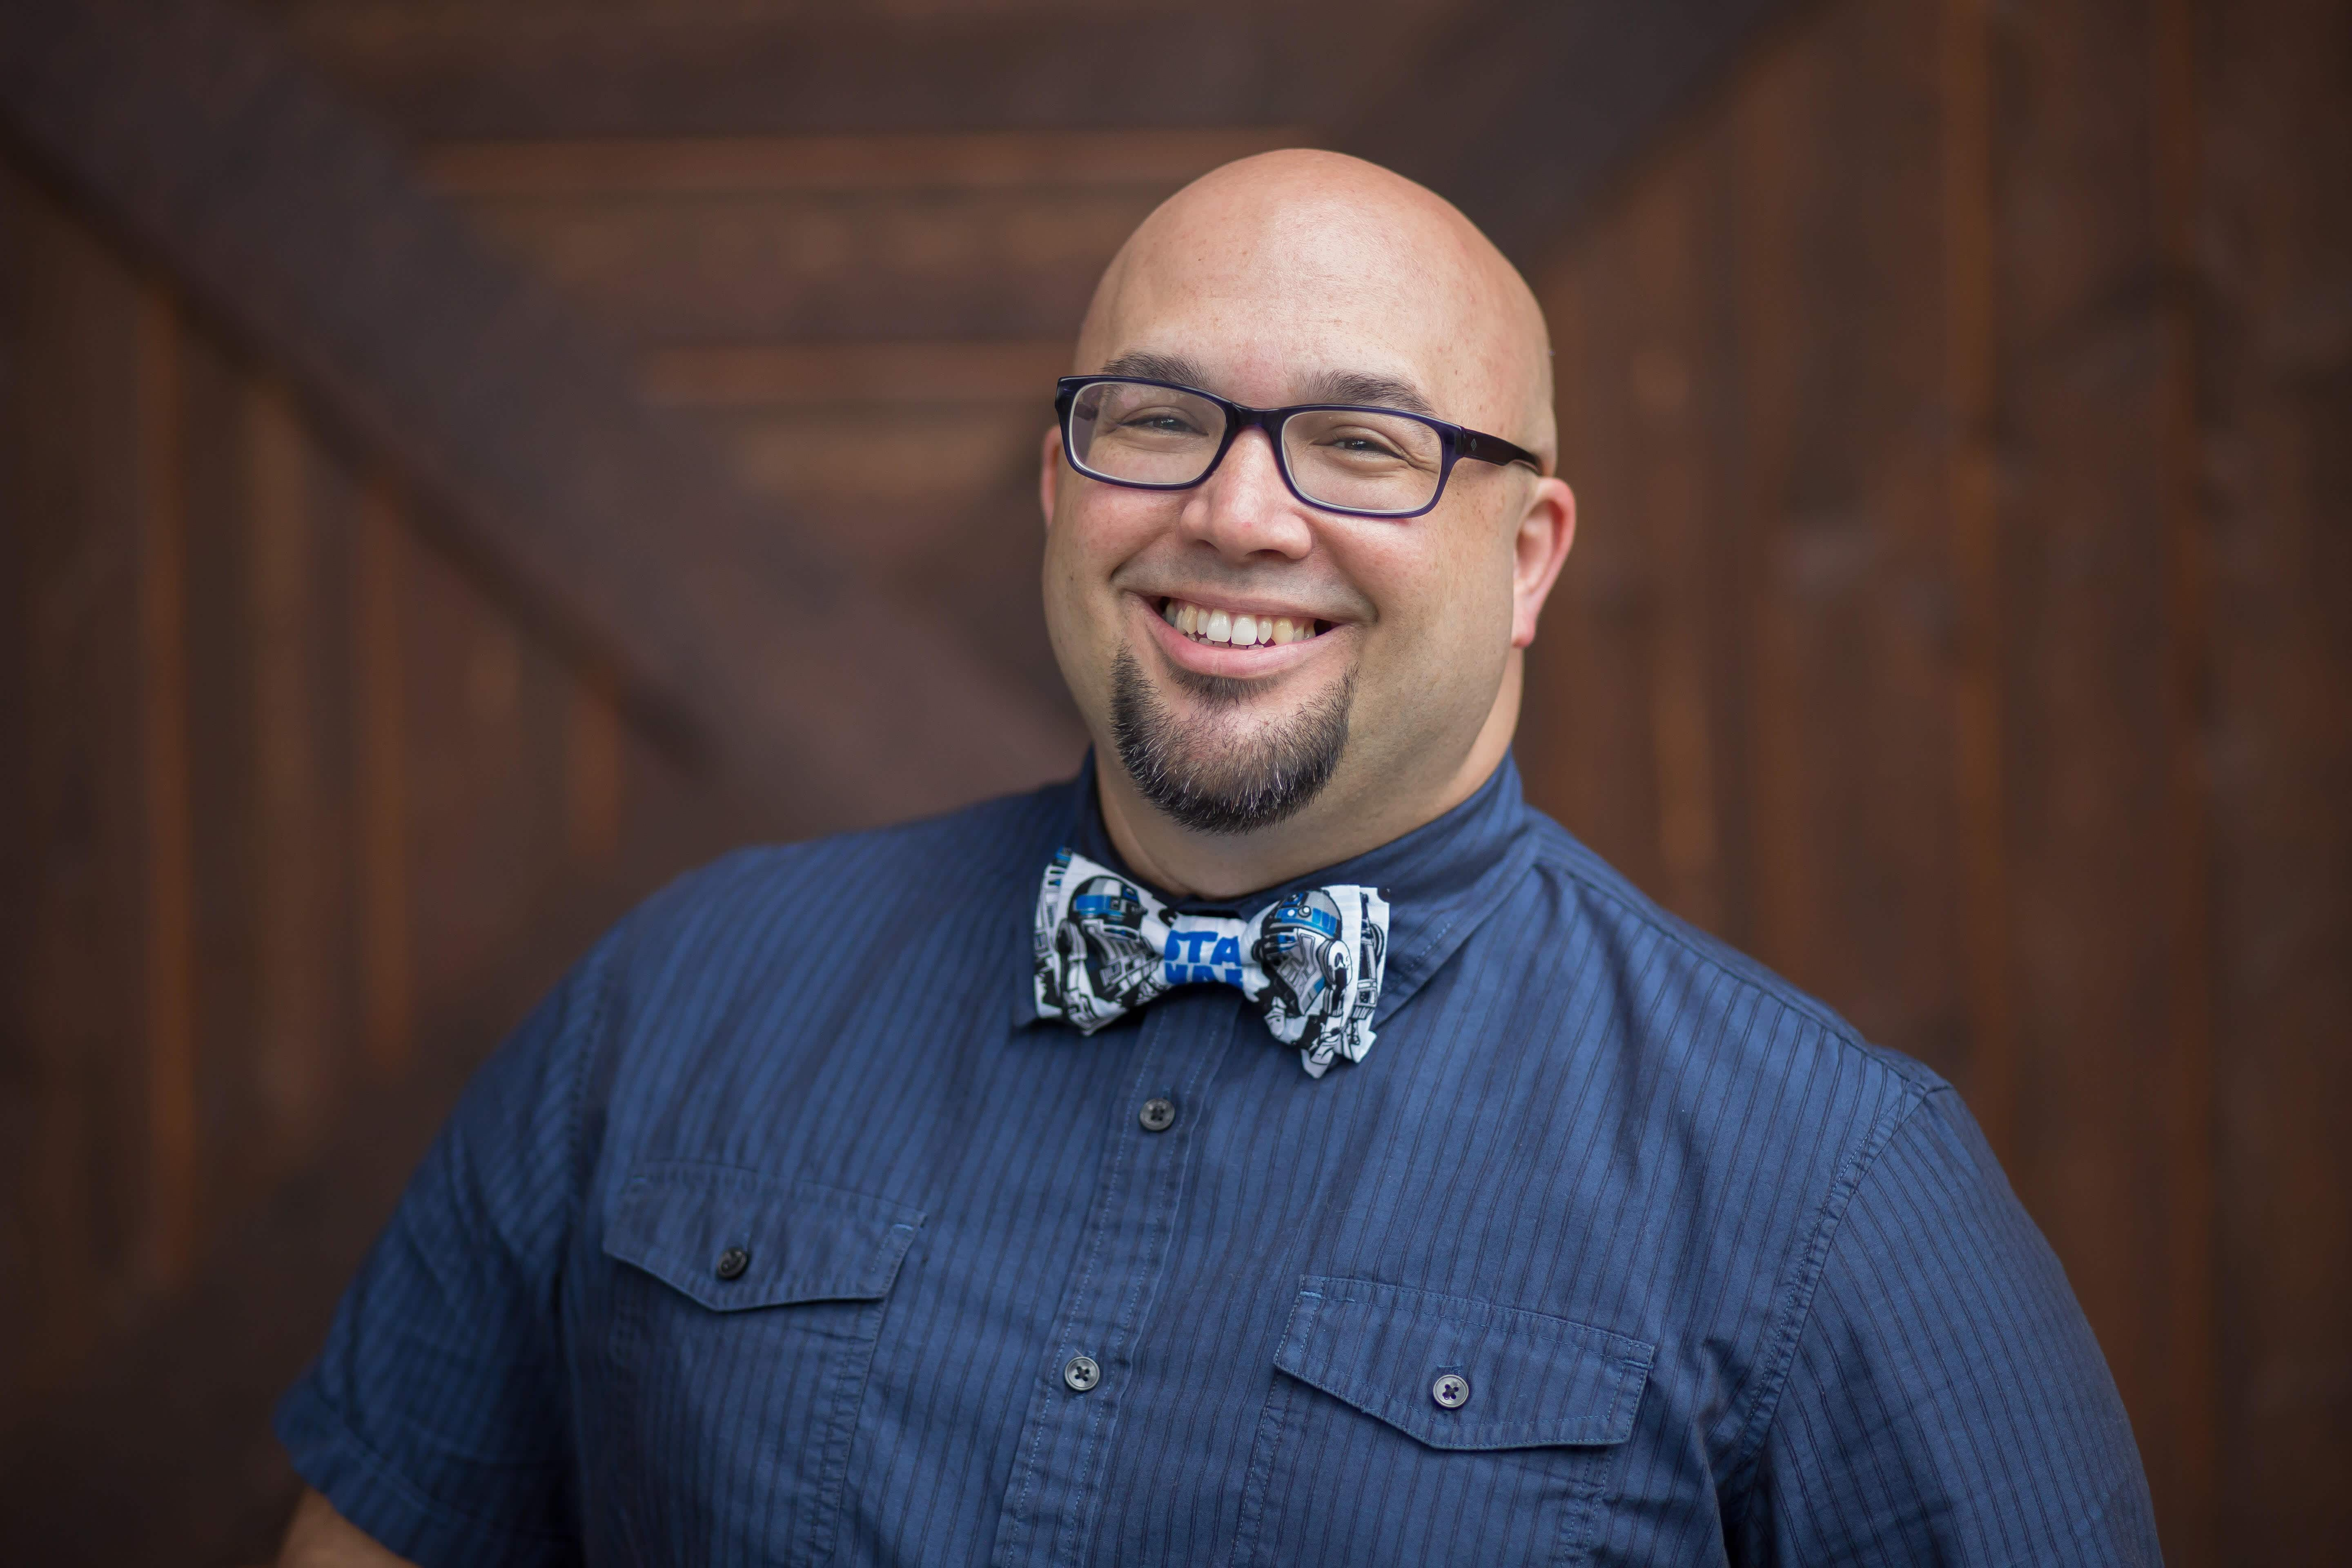 CNLP 066: Time Management and More Practical Tech Hacks With Geek Pastor, Wayne Cordova